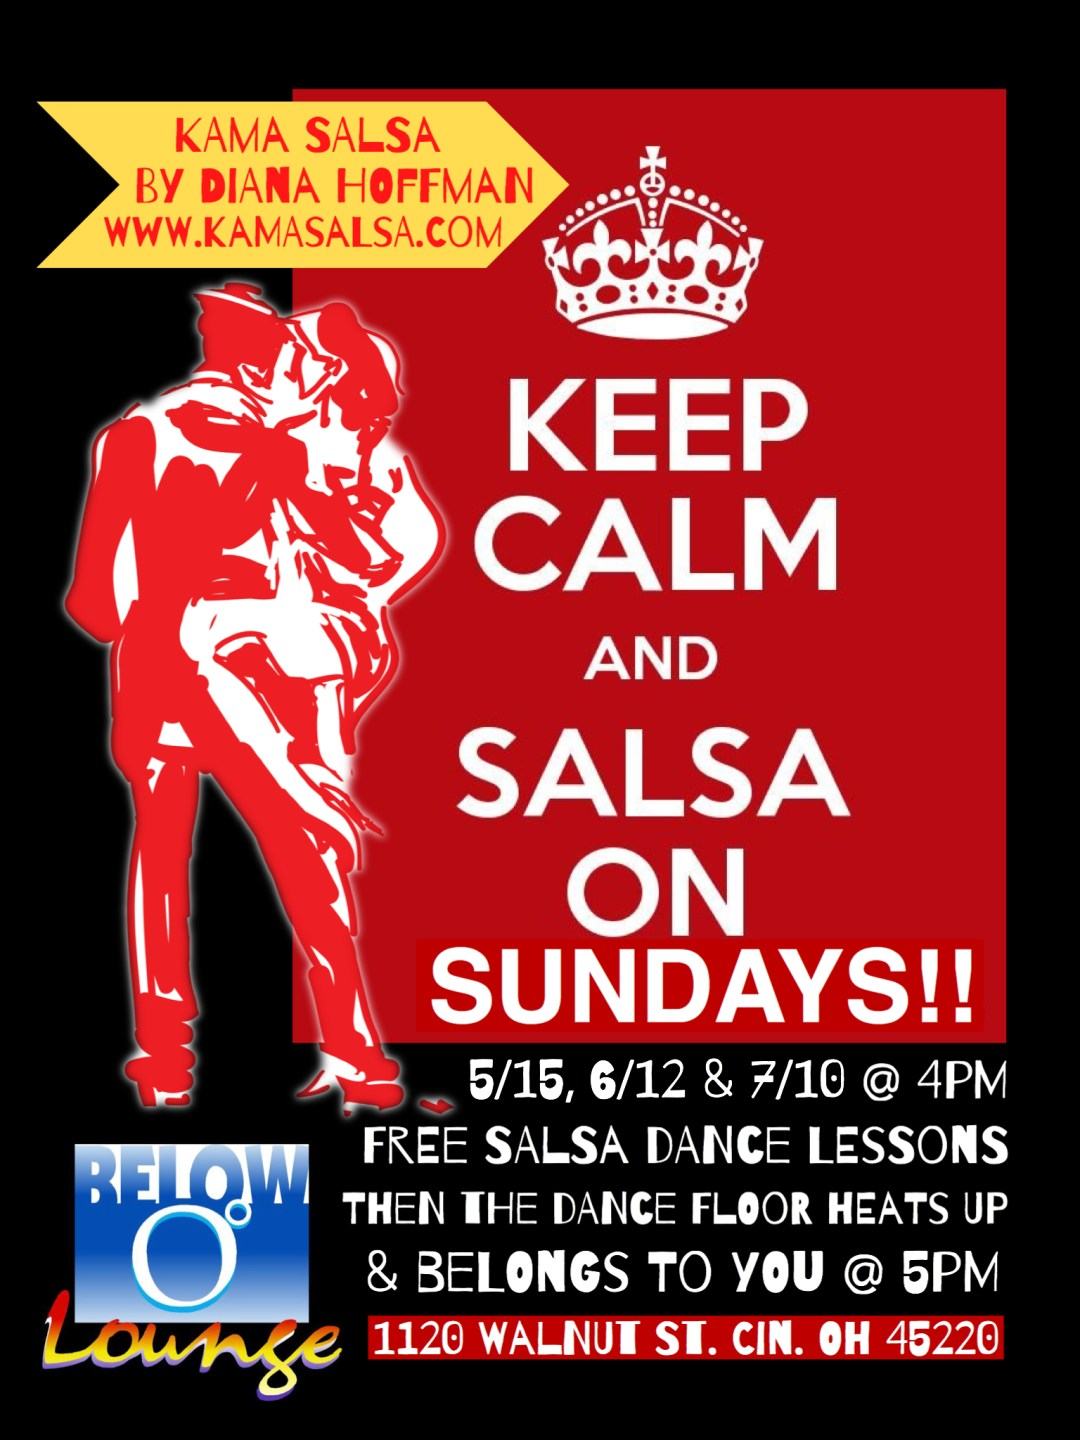 Salsa on Sundays